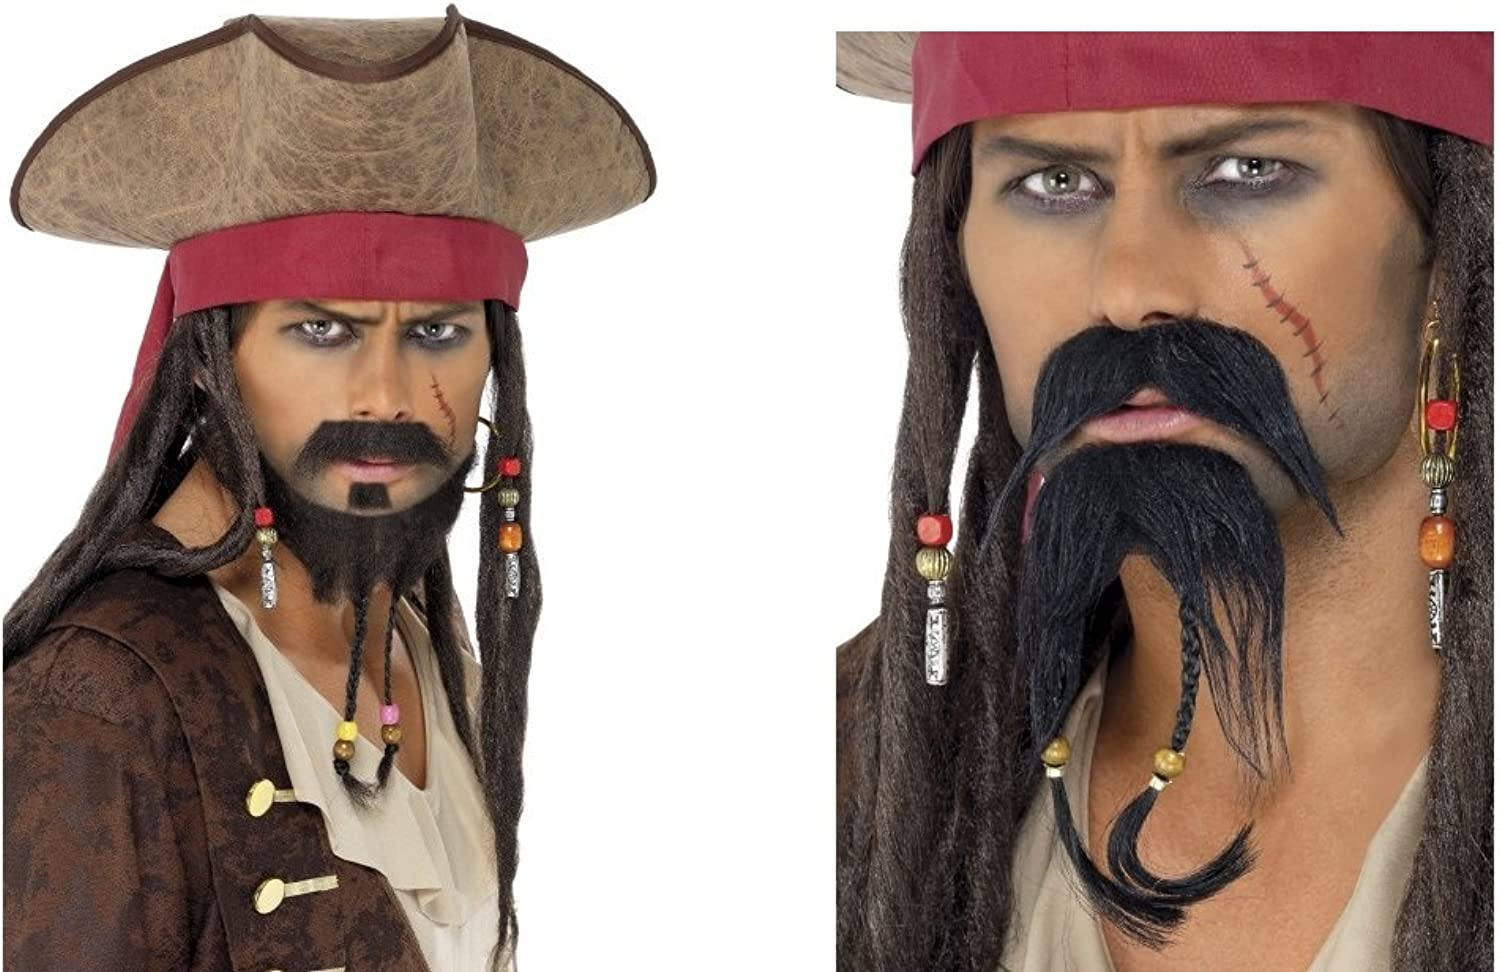 2pc Pirate Hat and Facial Hair Set braun Adult Fancy Dress Accessory Kit Jack Sparrow Pirates of Caribbean Buccaneer B07CSS2FZW Am praktischsten  | Ästhetisches Aussehen